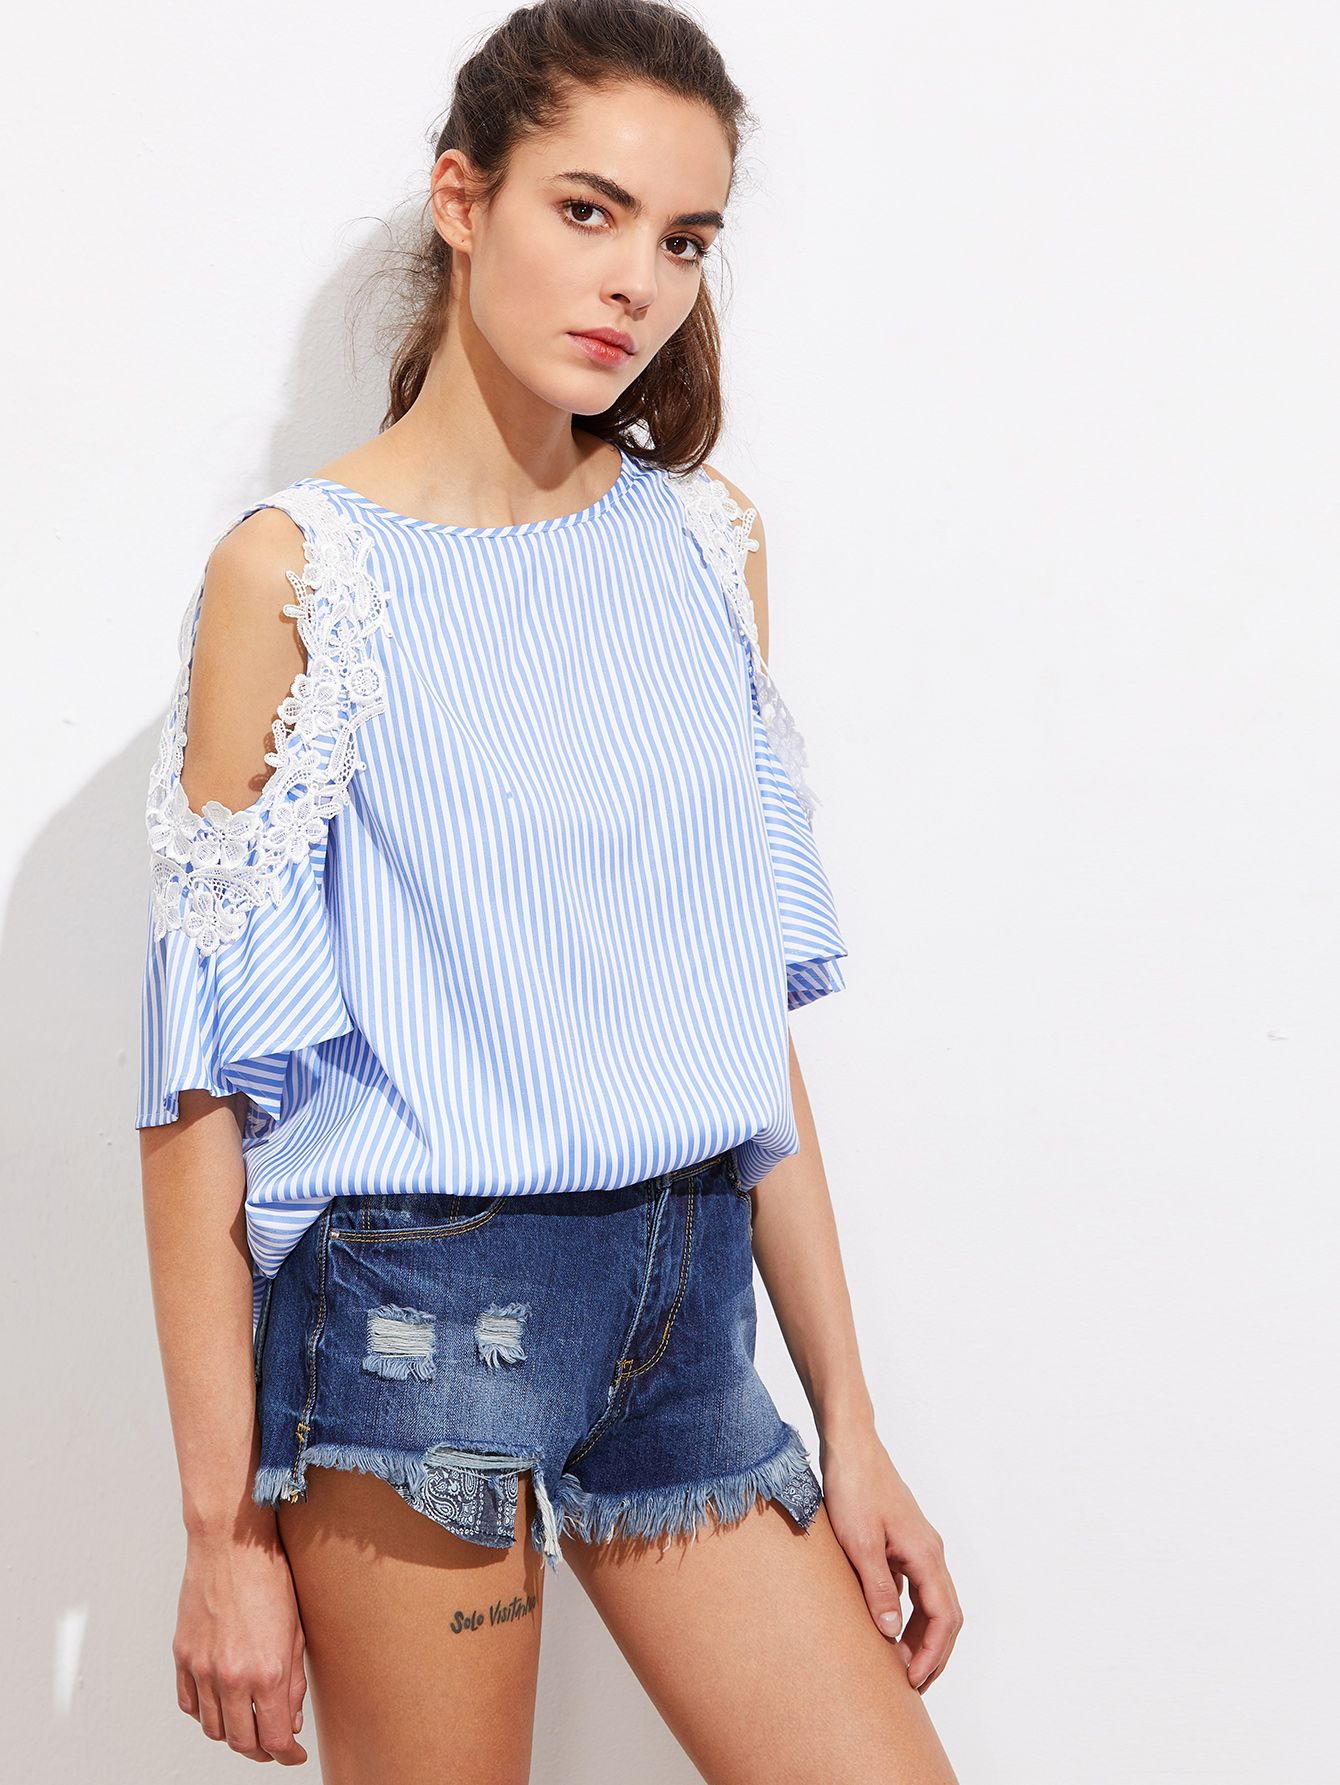 4f72dd037c blouse170503701_2 Stripes Fashion, Beach Casual, Casual Tops, Types Of  Sleeves, Half Sleeves